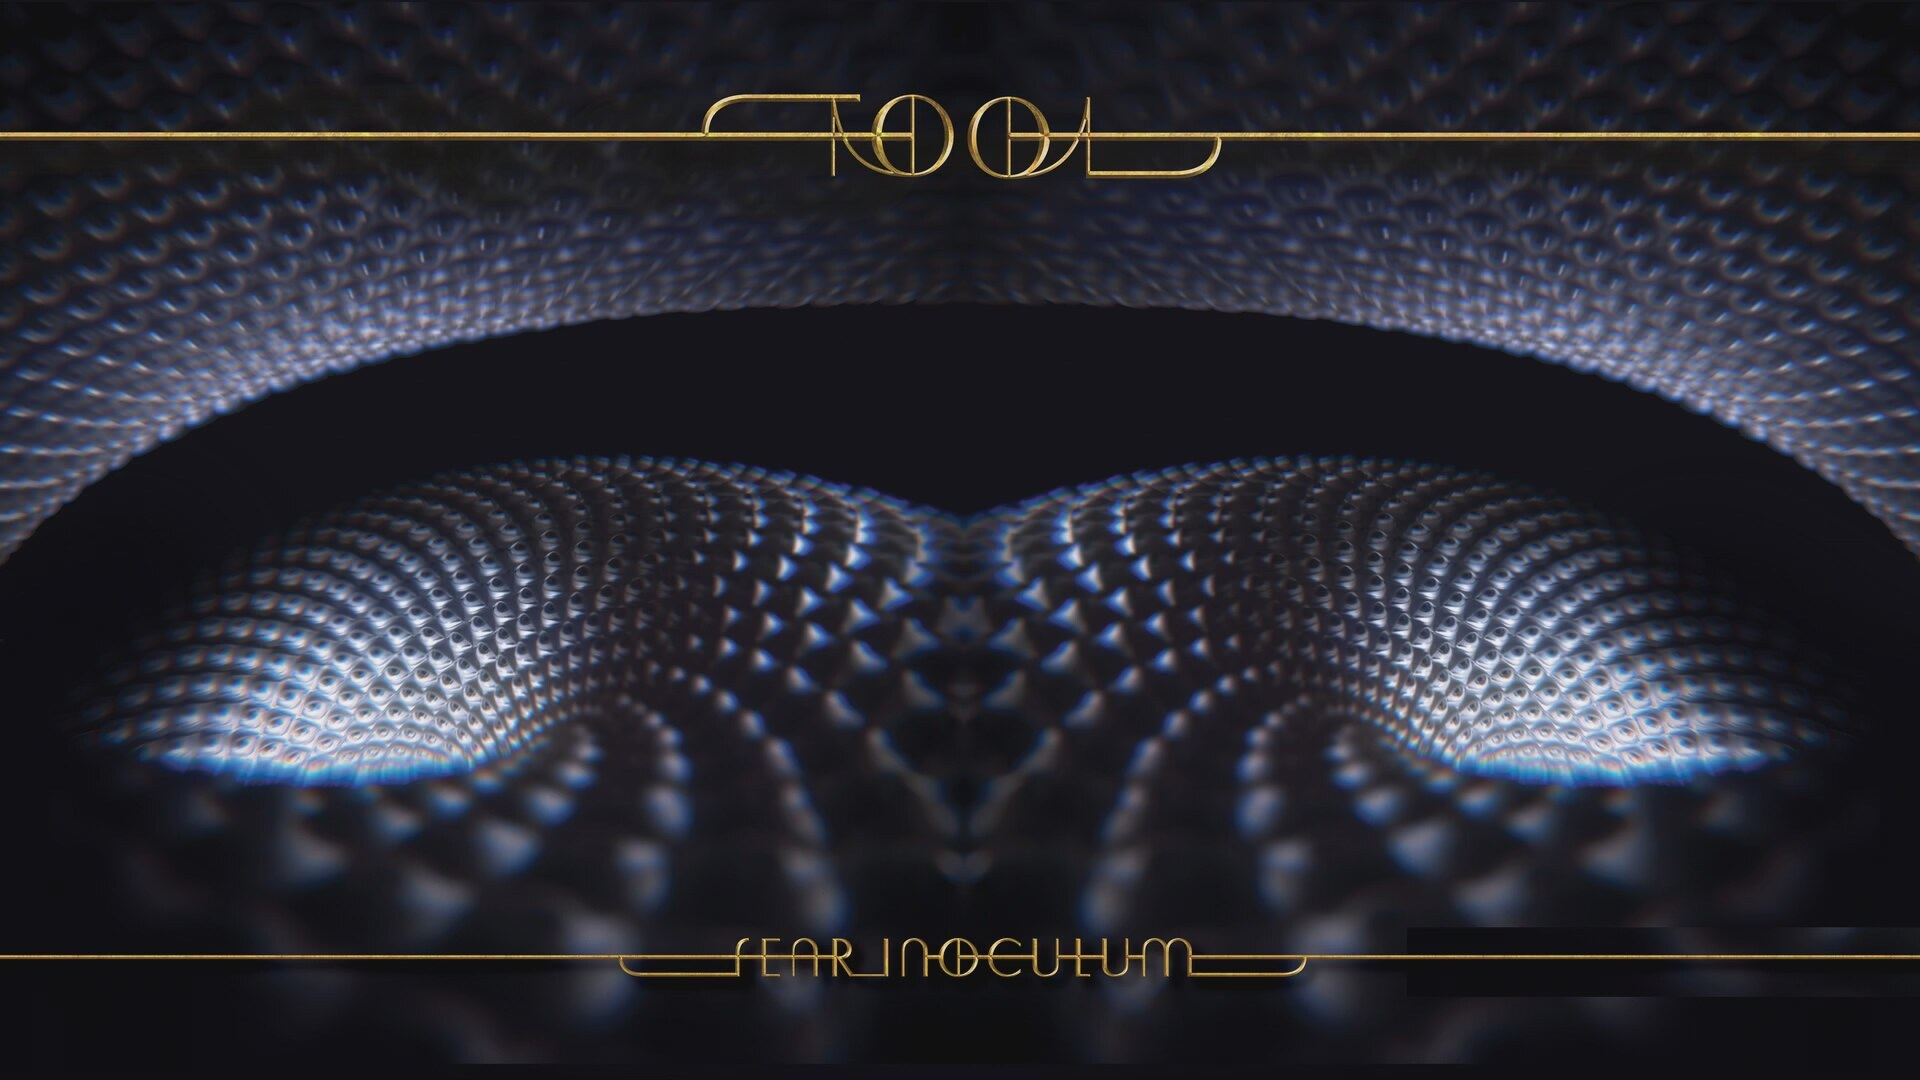 tool-fear-inoculum-audio_10419931-74640_1920x1080